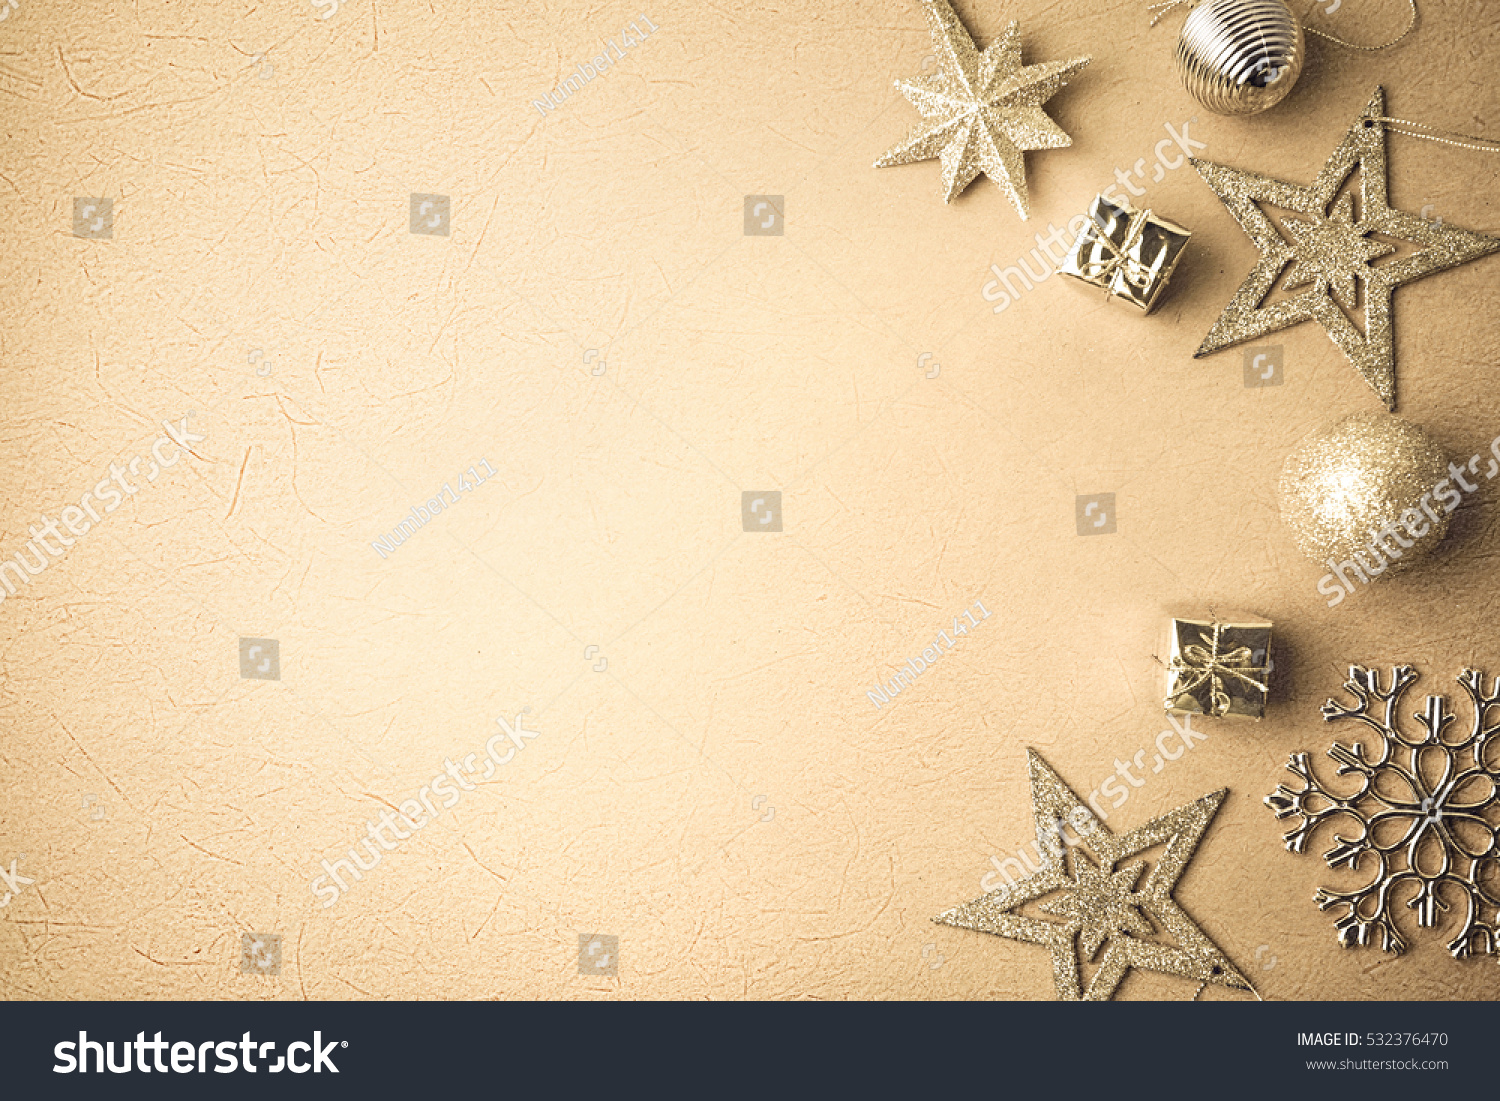 Christmas Decorations On Mulberry Paper Texture Stock Photo (Royalty ...